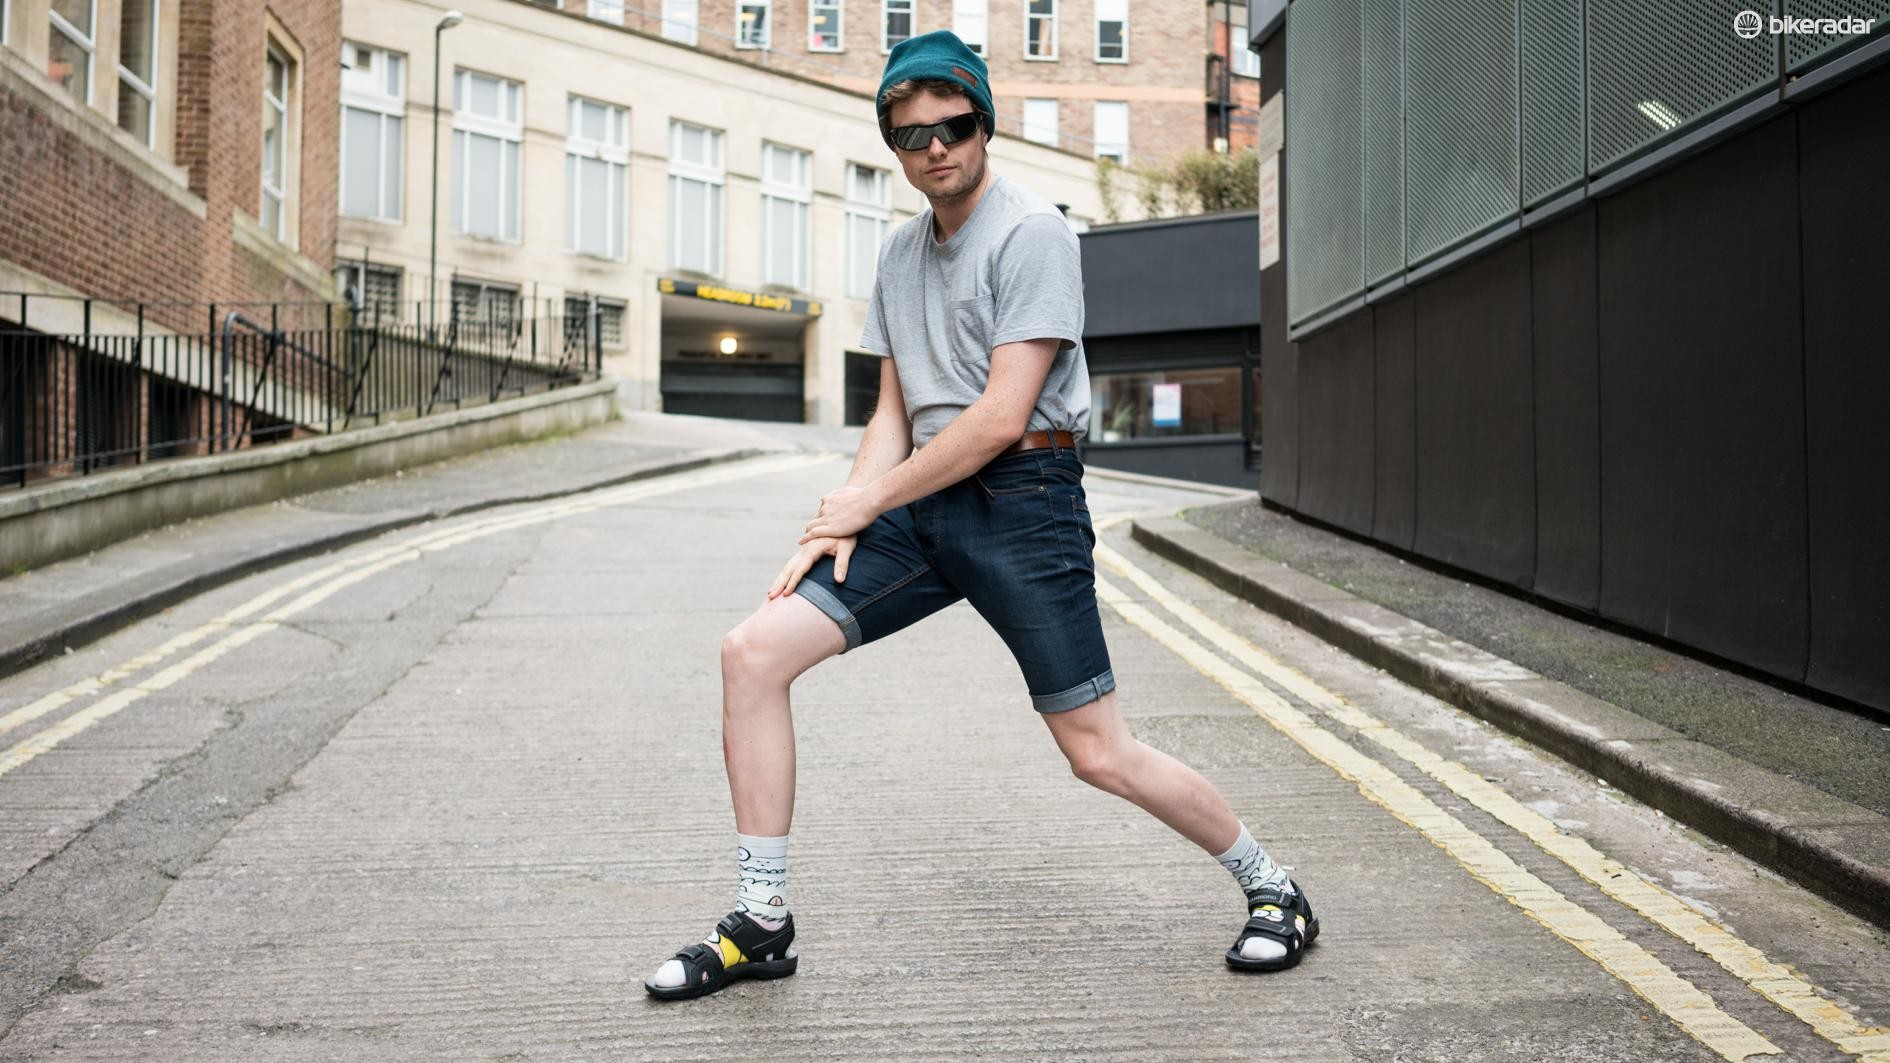 It's pretty much mandatory that you model the sandals with socks